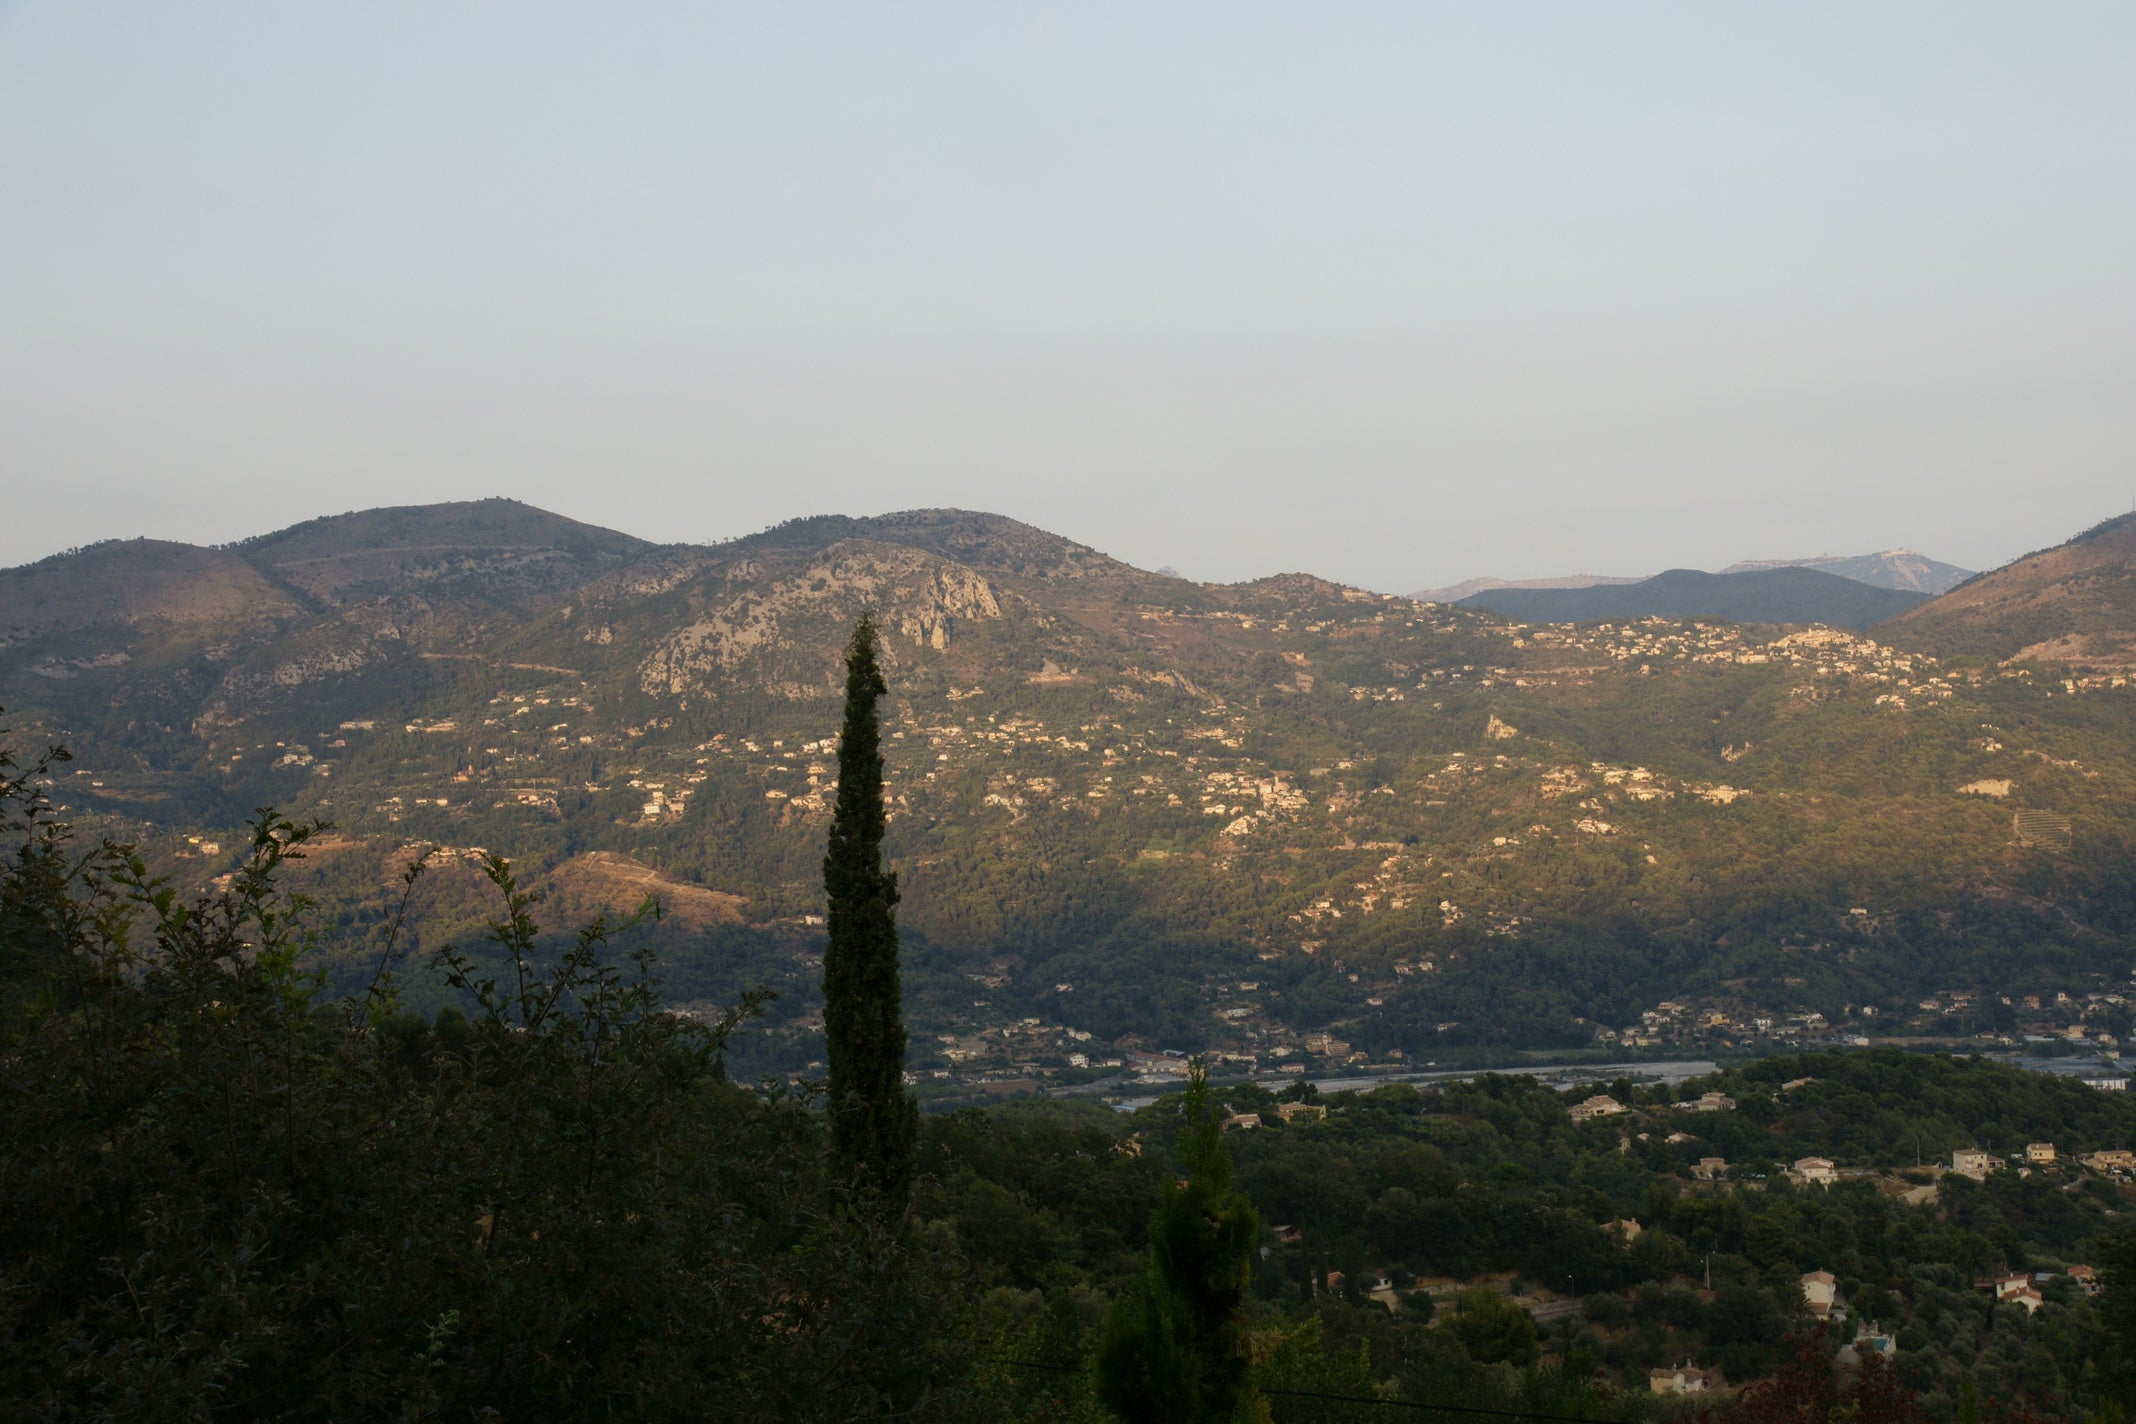 Hill in Carros